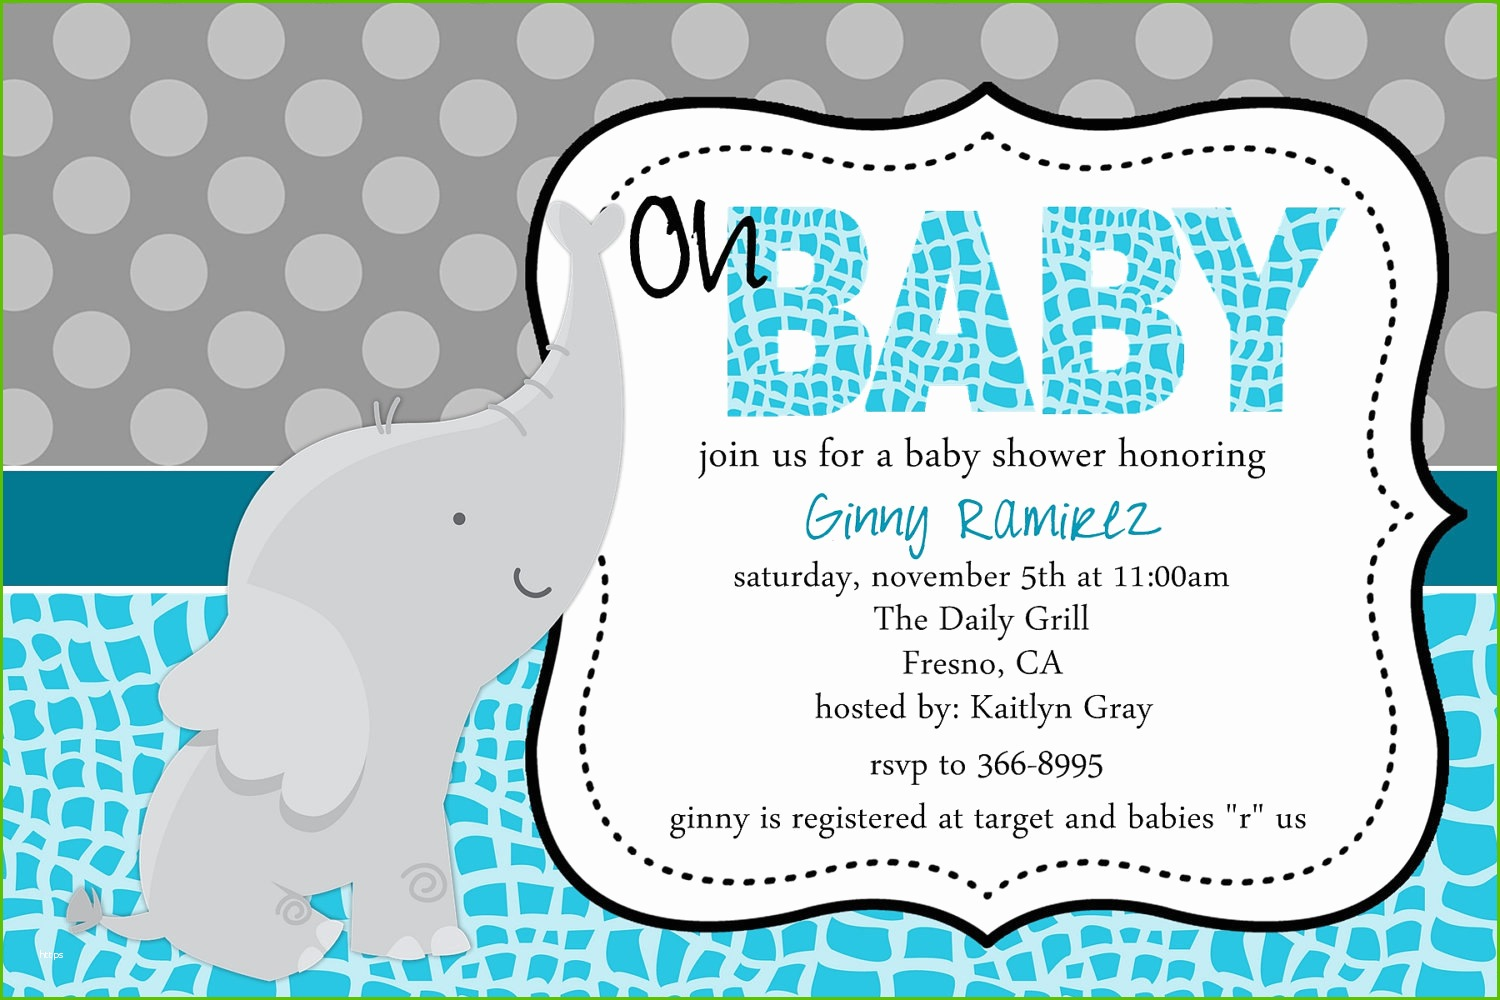 Full Size of Baby Shower:inspirational Elephant Baby Shower Invitations Photo Concepts Elephant Baby Shower Invitations Homemade Baby Shower Gifts Regalos Para Baby Shower Baby Shower Messages Baby Shower Game Ideas Baby Shower For Men